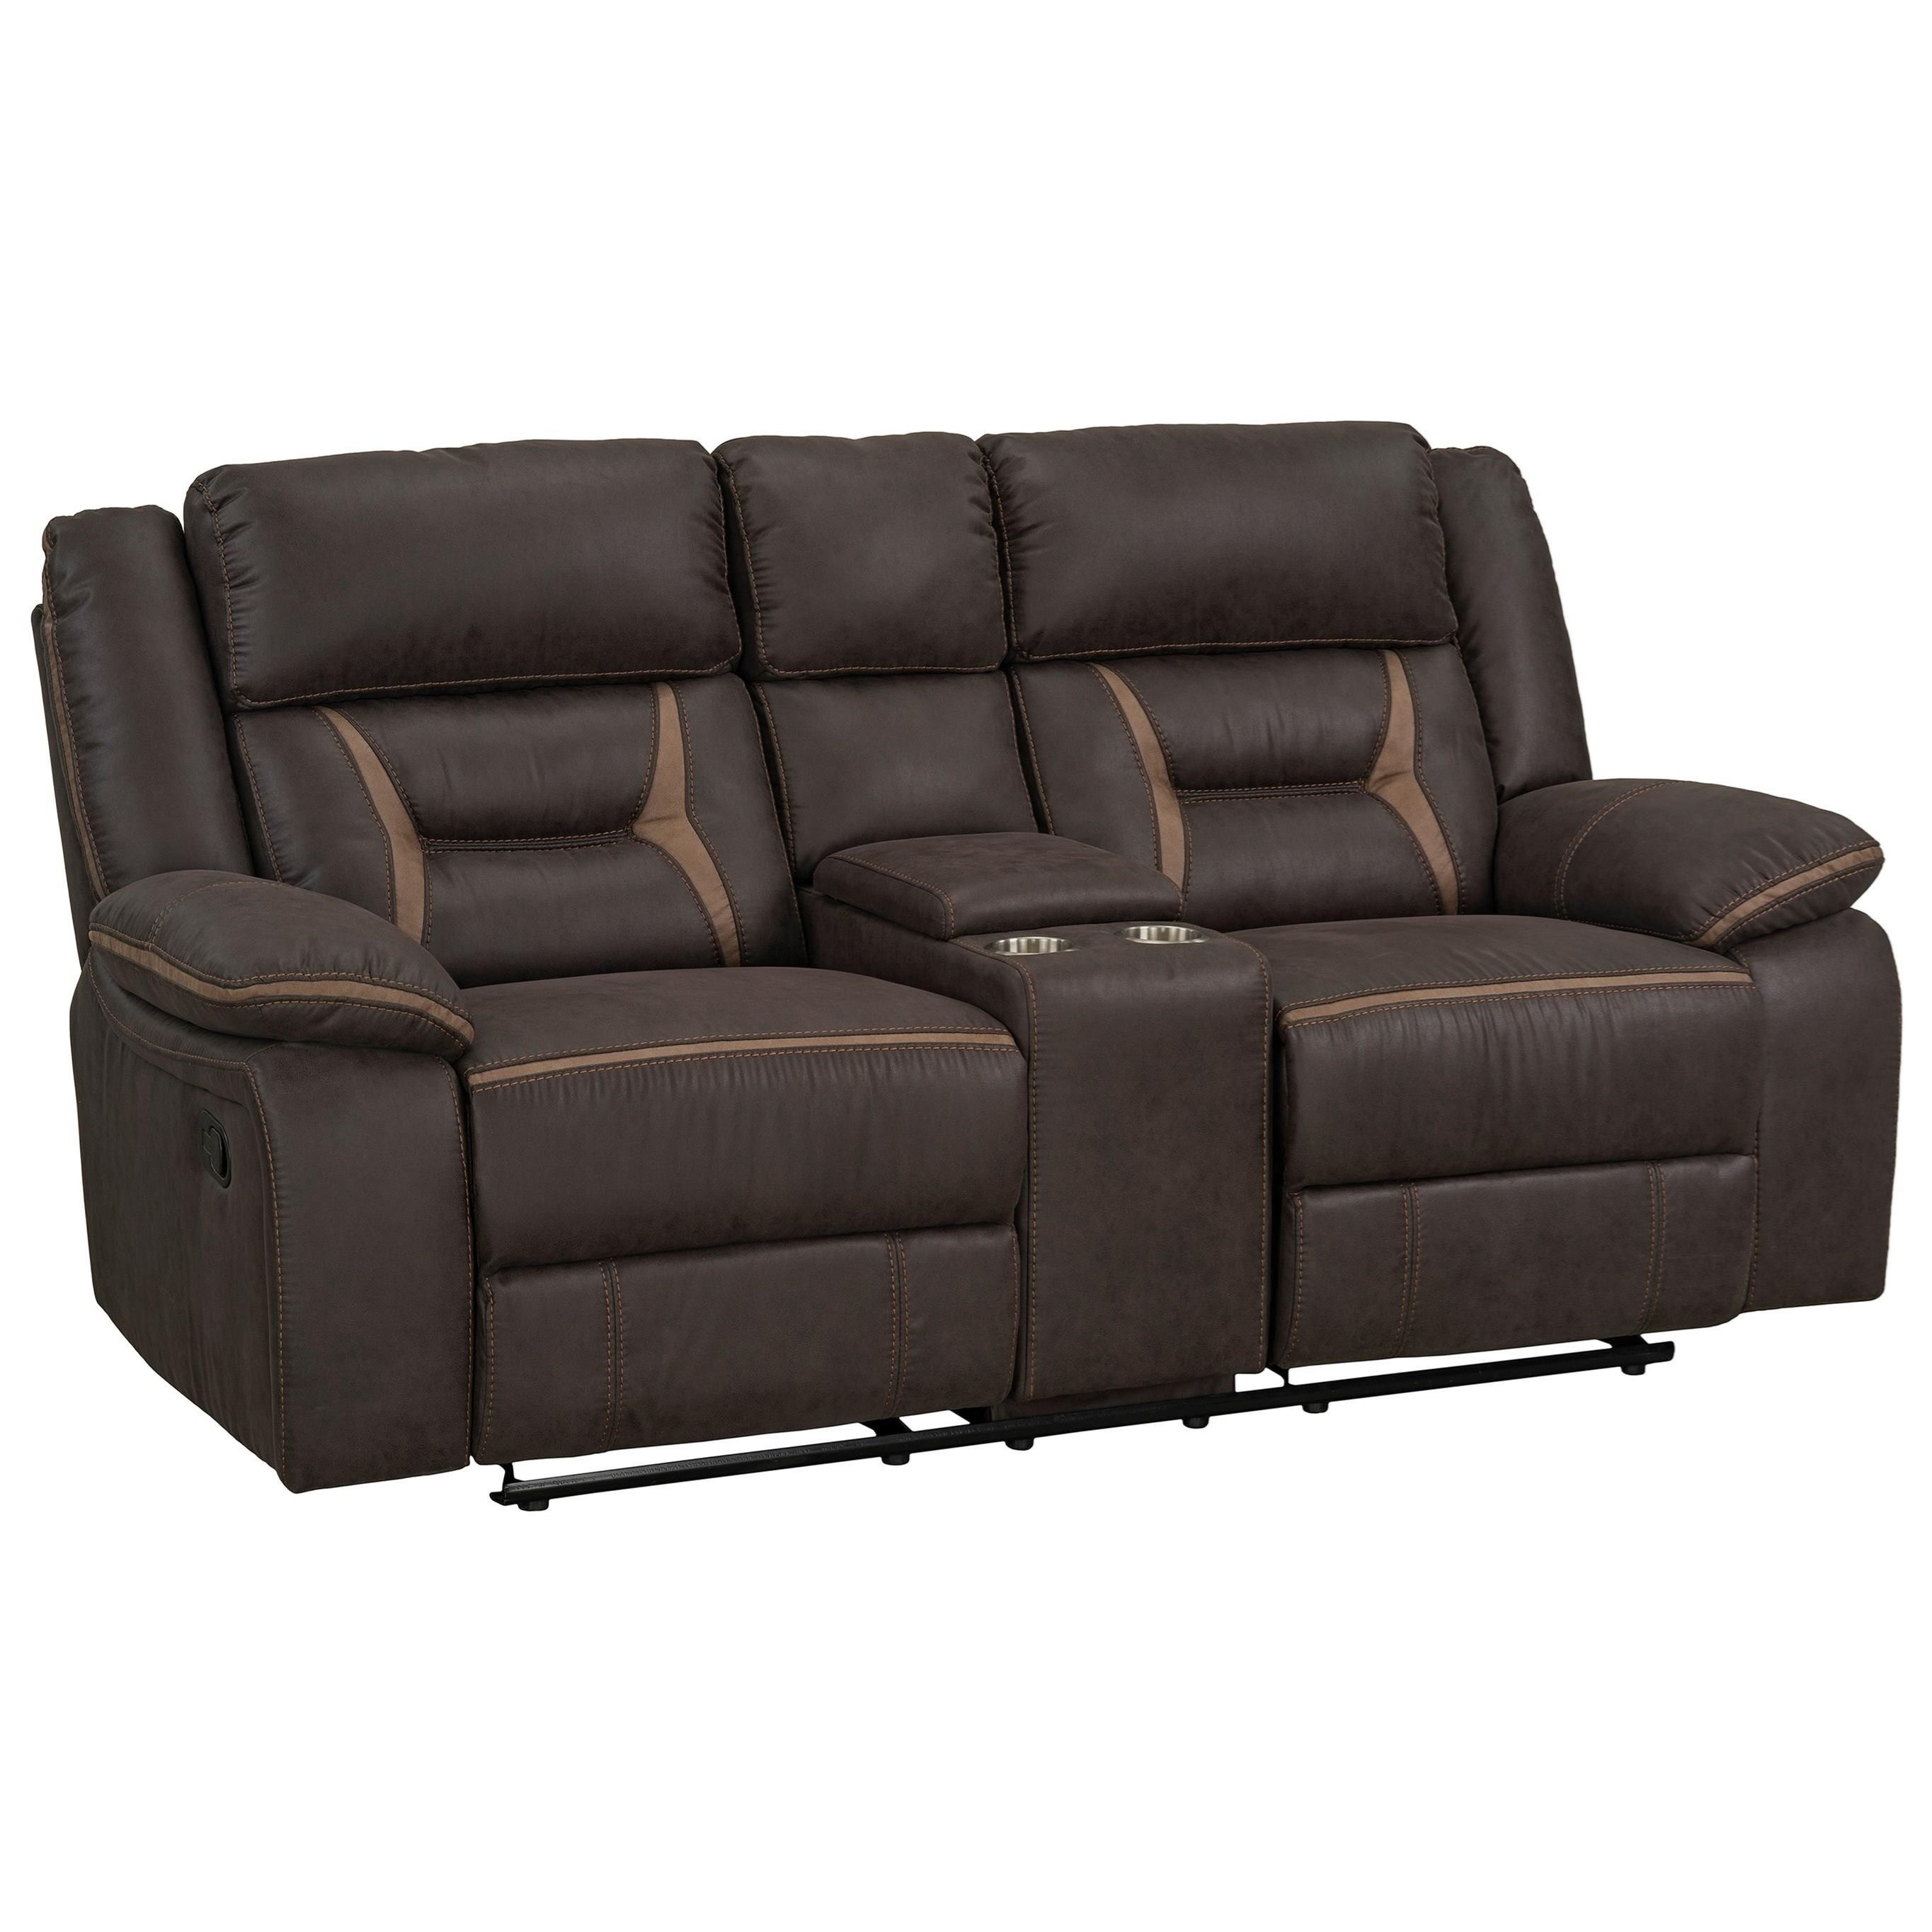 Acropolis Power Glider Reclining Loveseat by Standard Furniture at Beds N Stuff